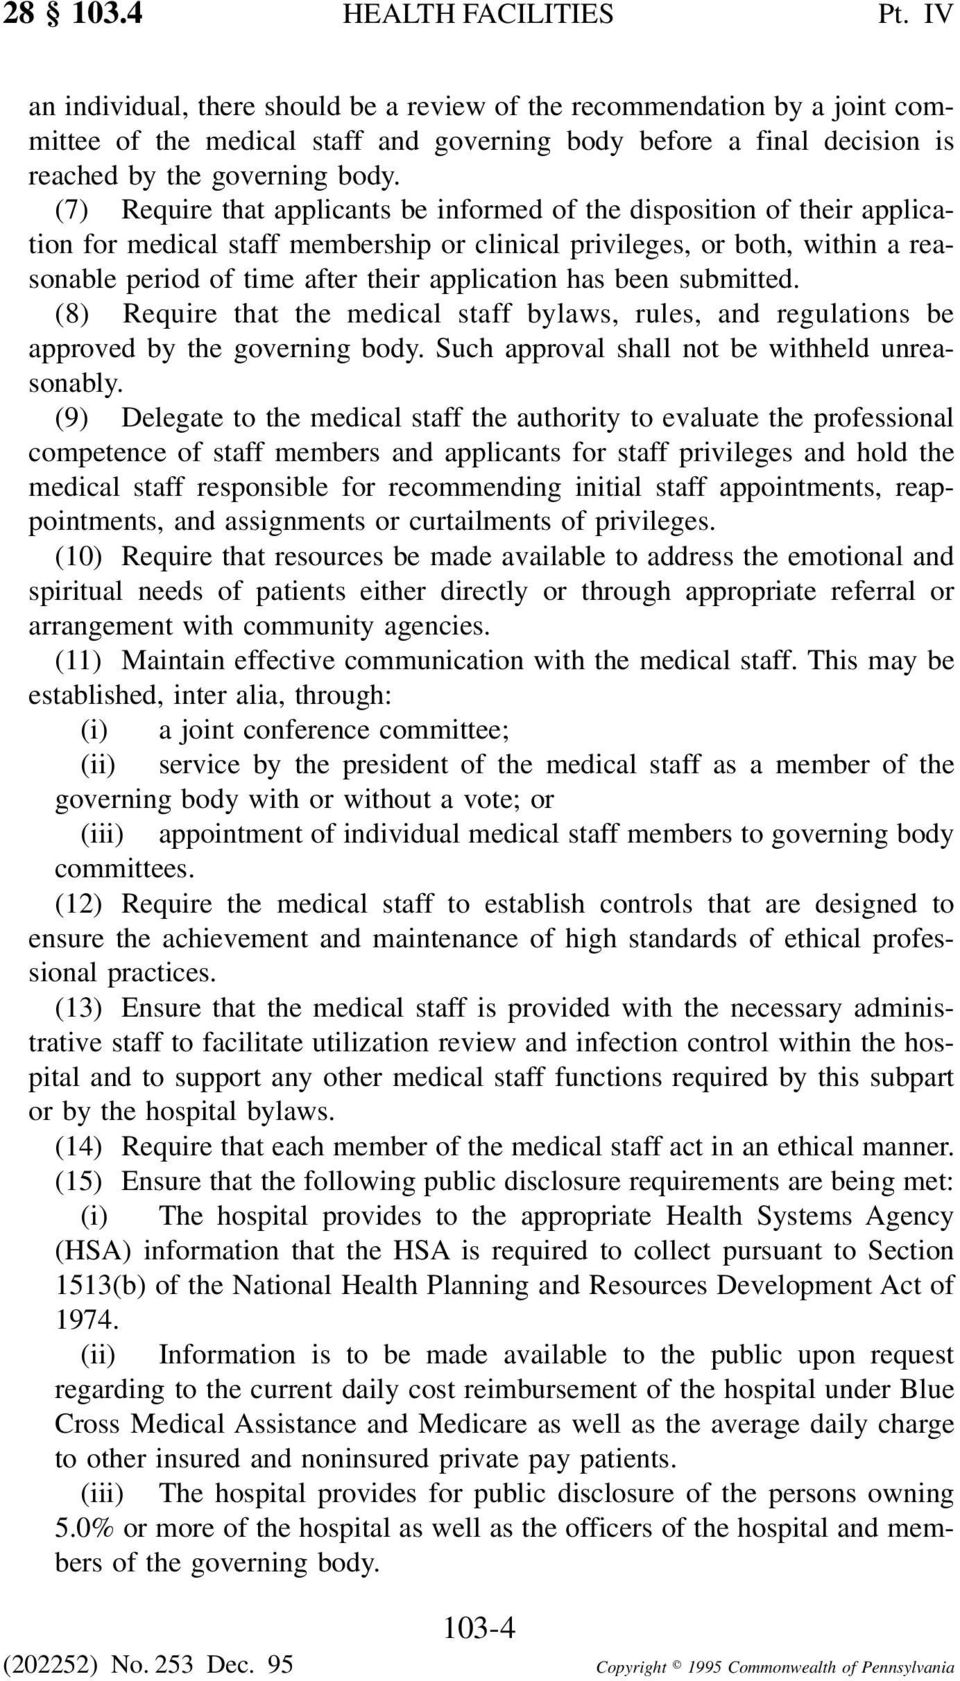 (7) Require that applicants be informed of the disposition of their application for medical staff membership or clinical privileges, or both, within a reasonable period of time after their